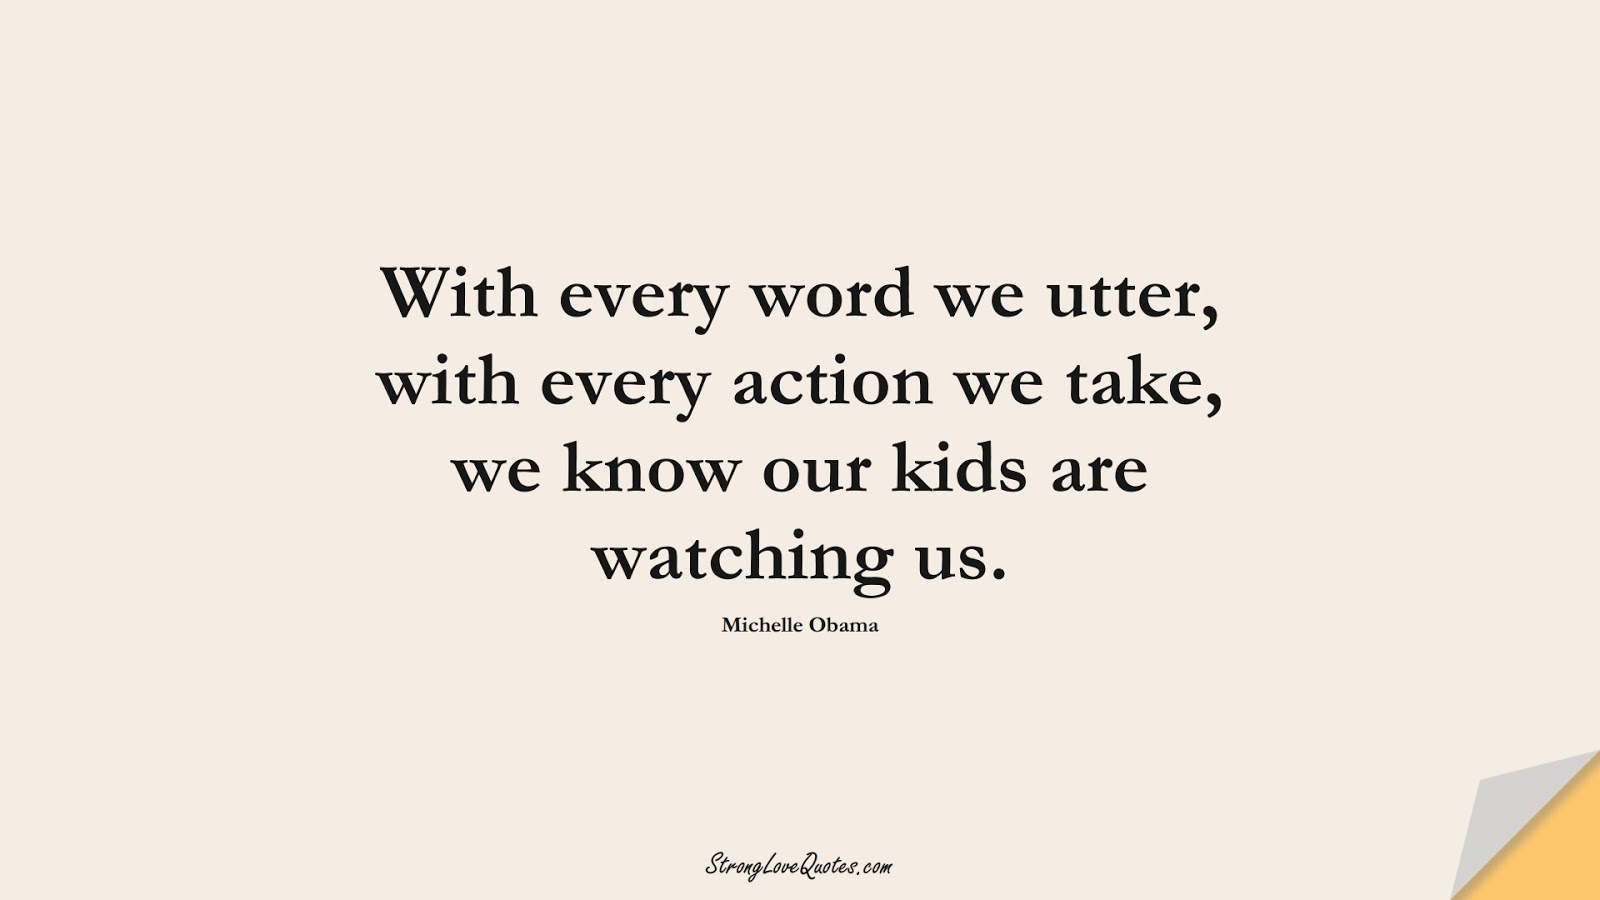 With every word we utter, with every action we take, we know our kids are watching us. (Michelle Obama);  #EducationQuotes